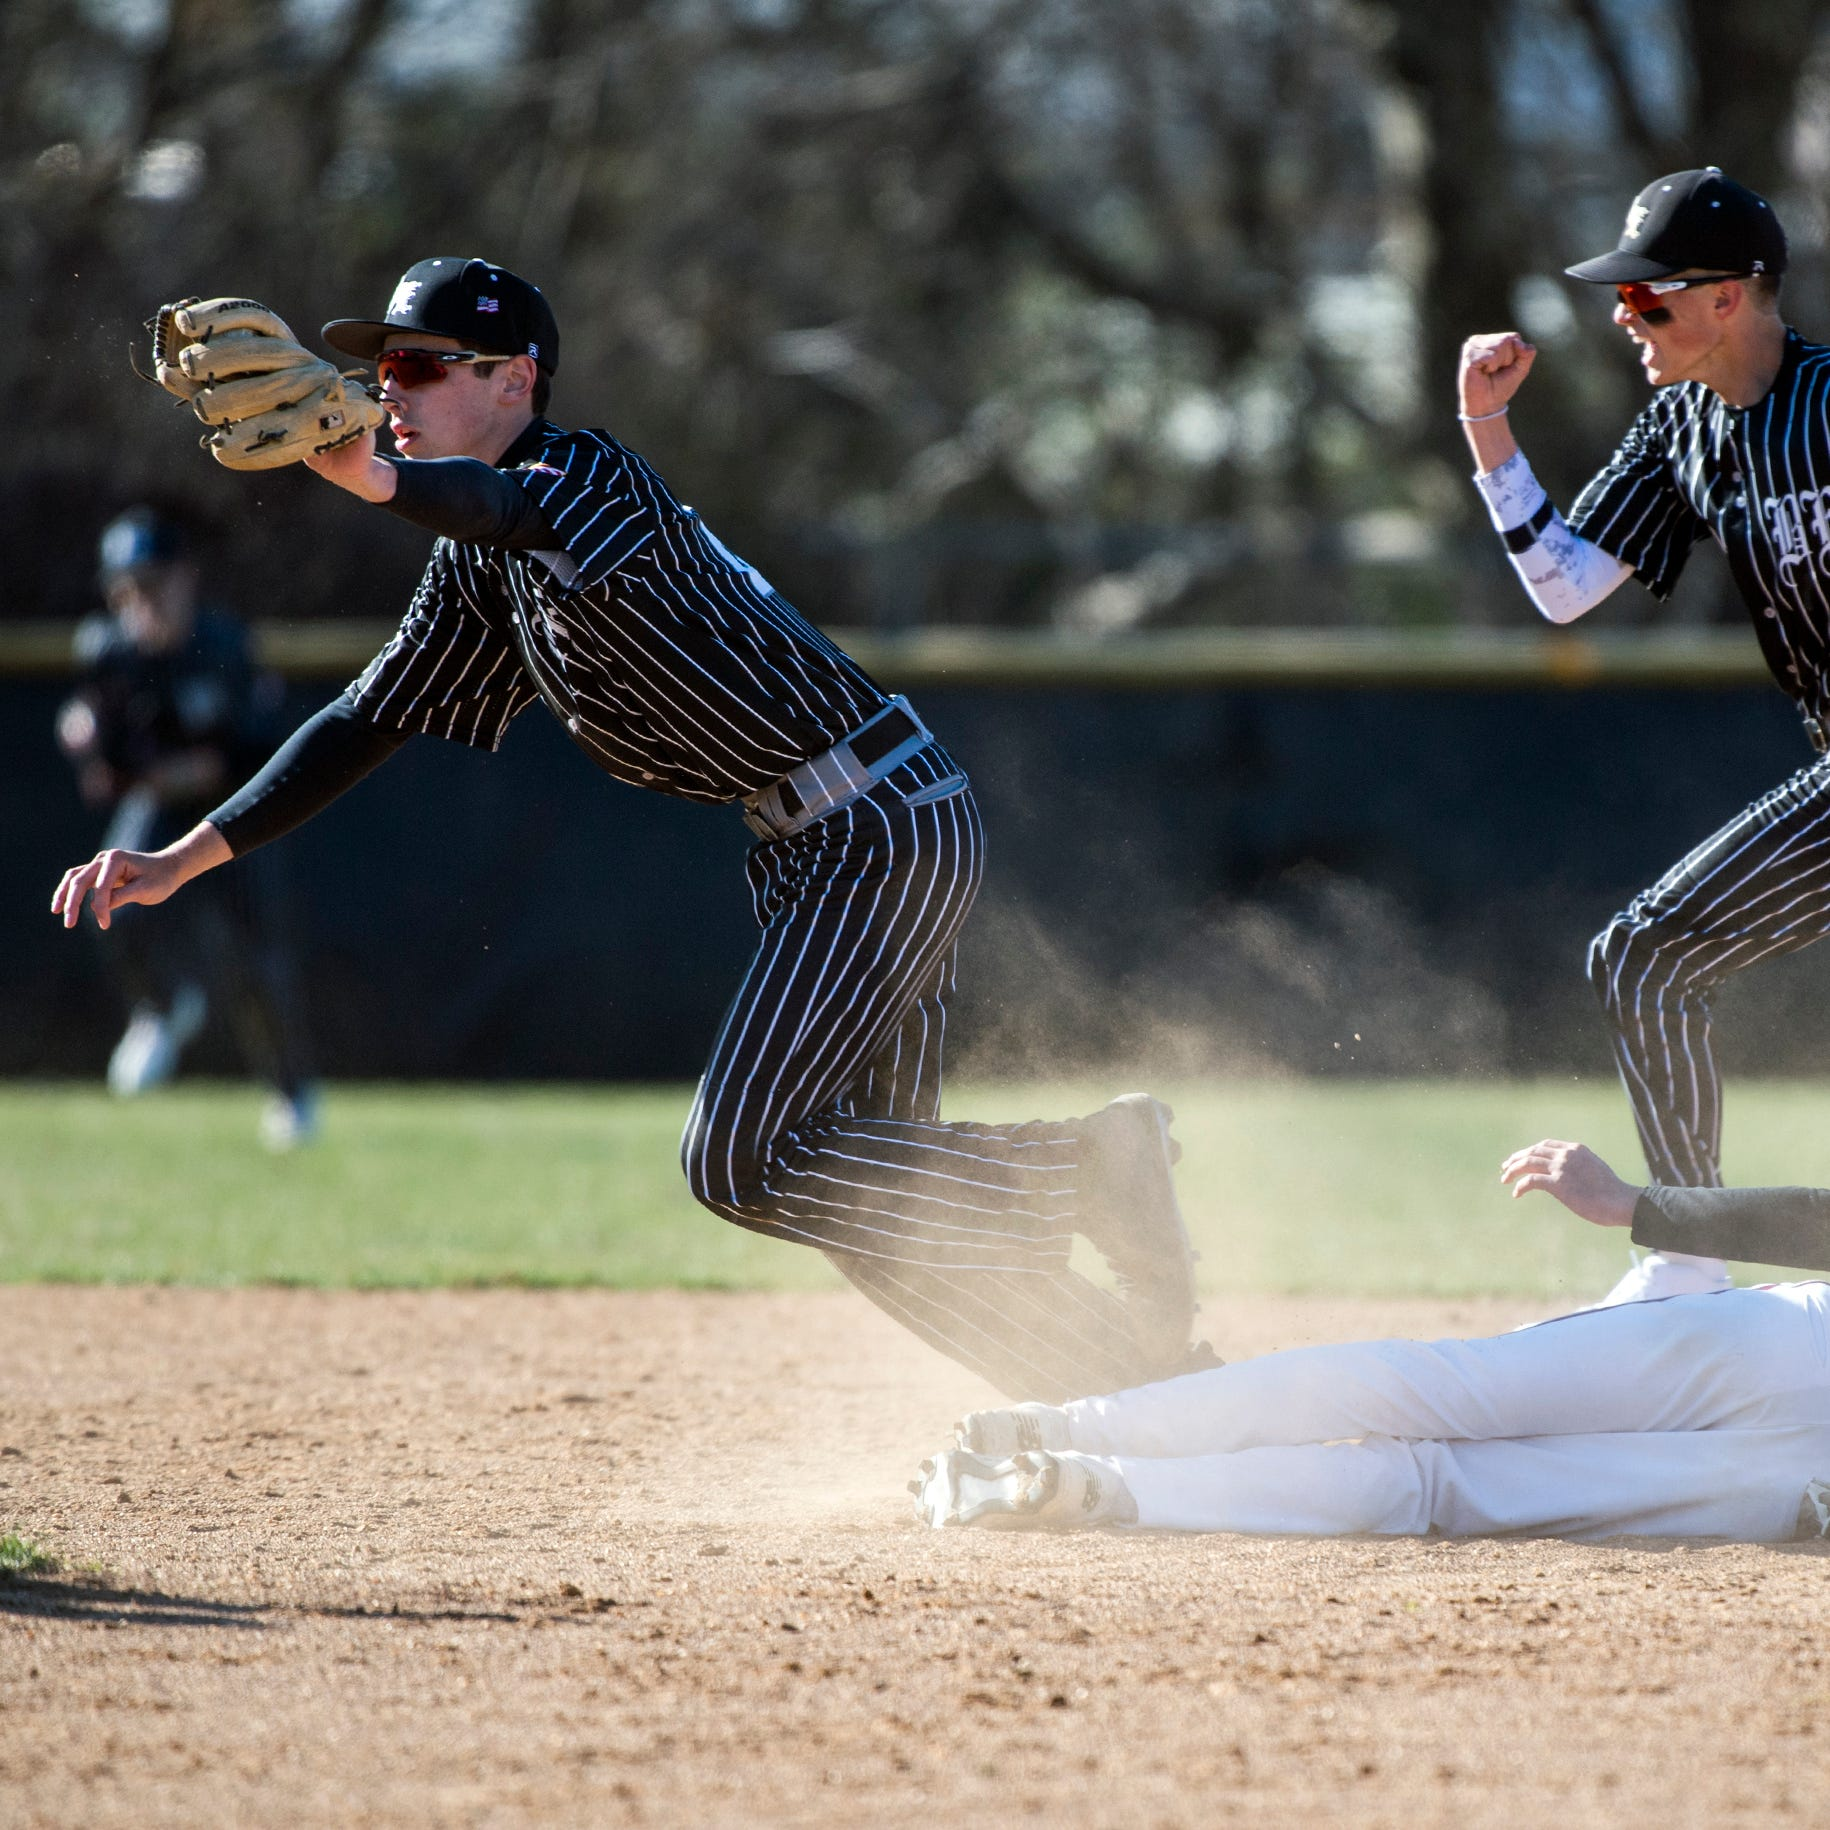 South Jersey baseball: Bishop Eustace opens 2019 in style with shutout win over Eastern